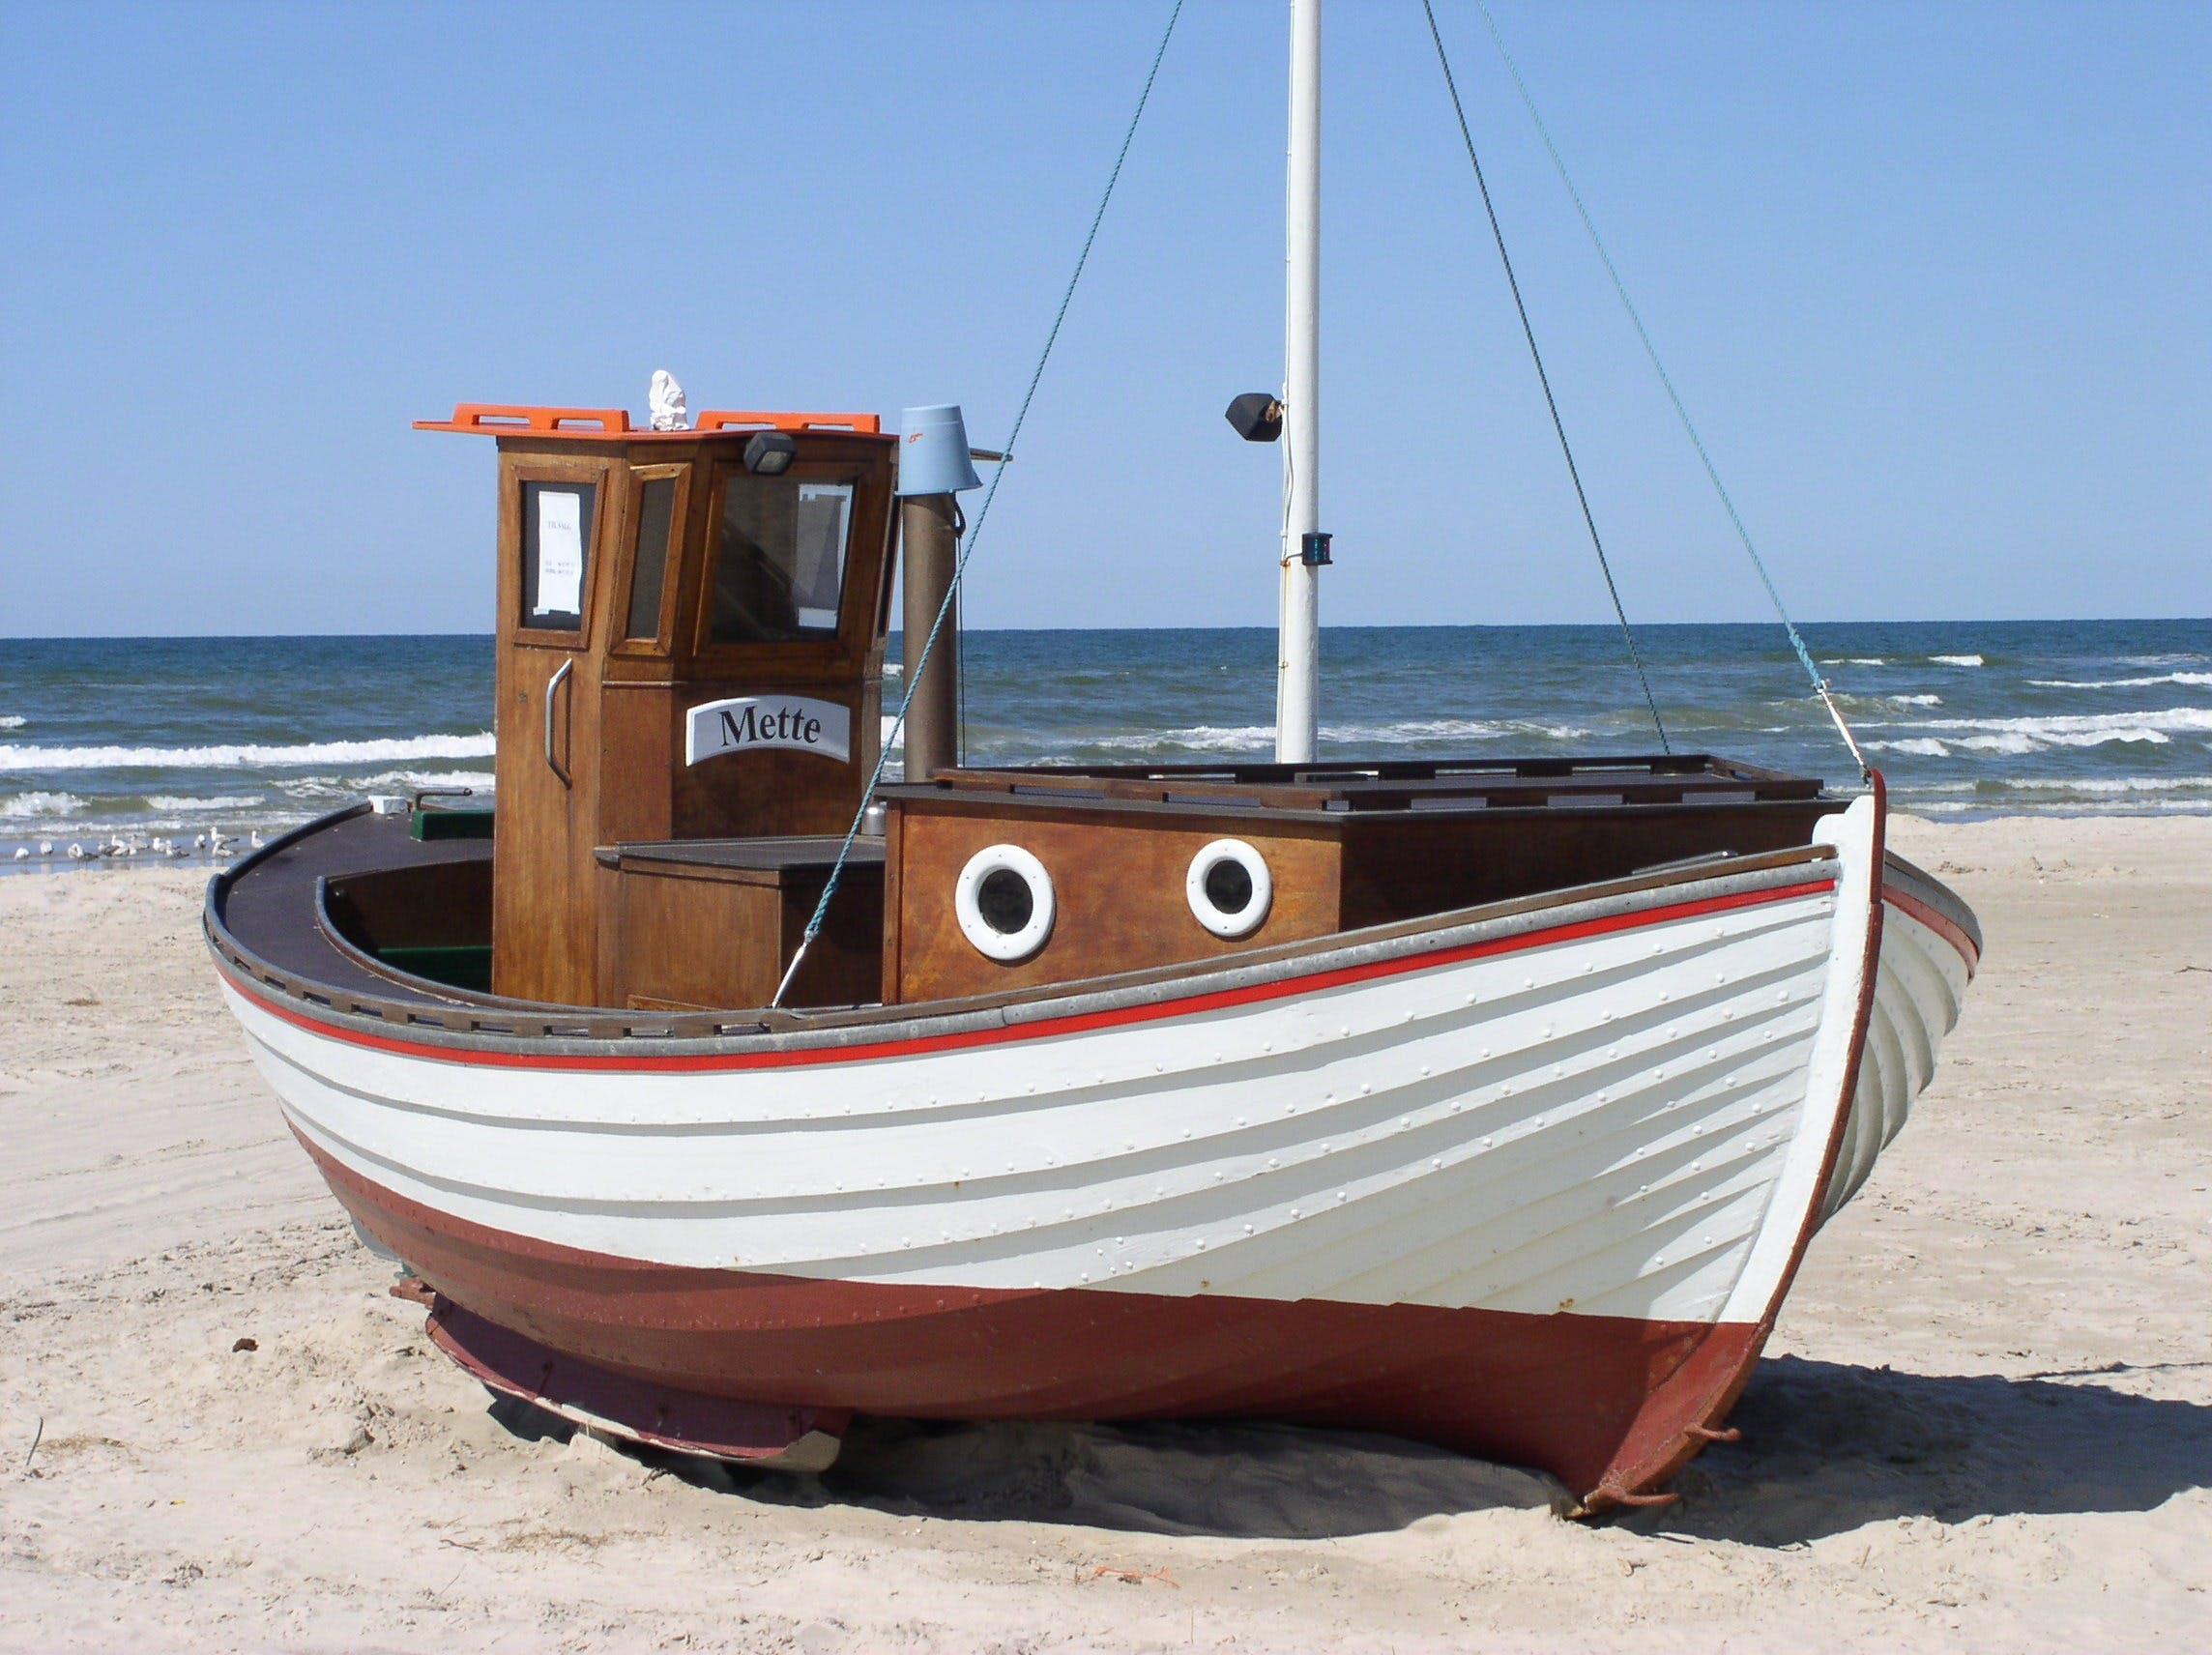 White and Brown Speedboat on White Sand Beside Ocean during Daytime